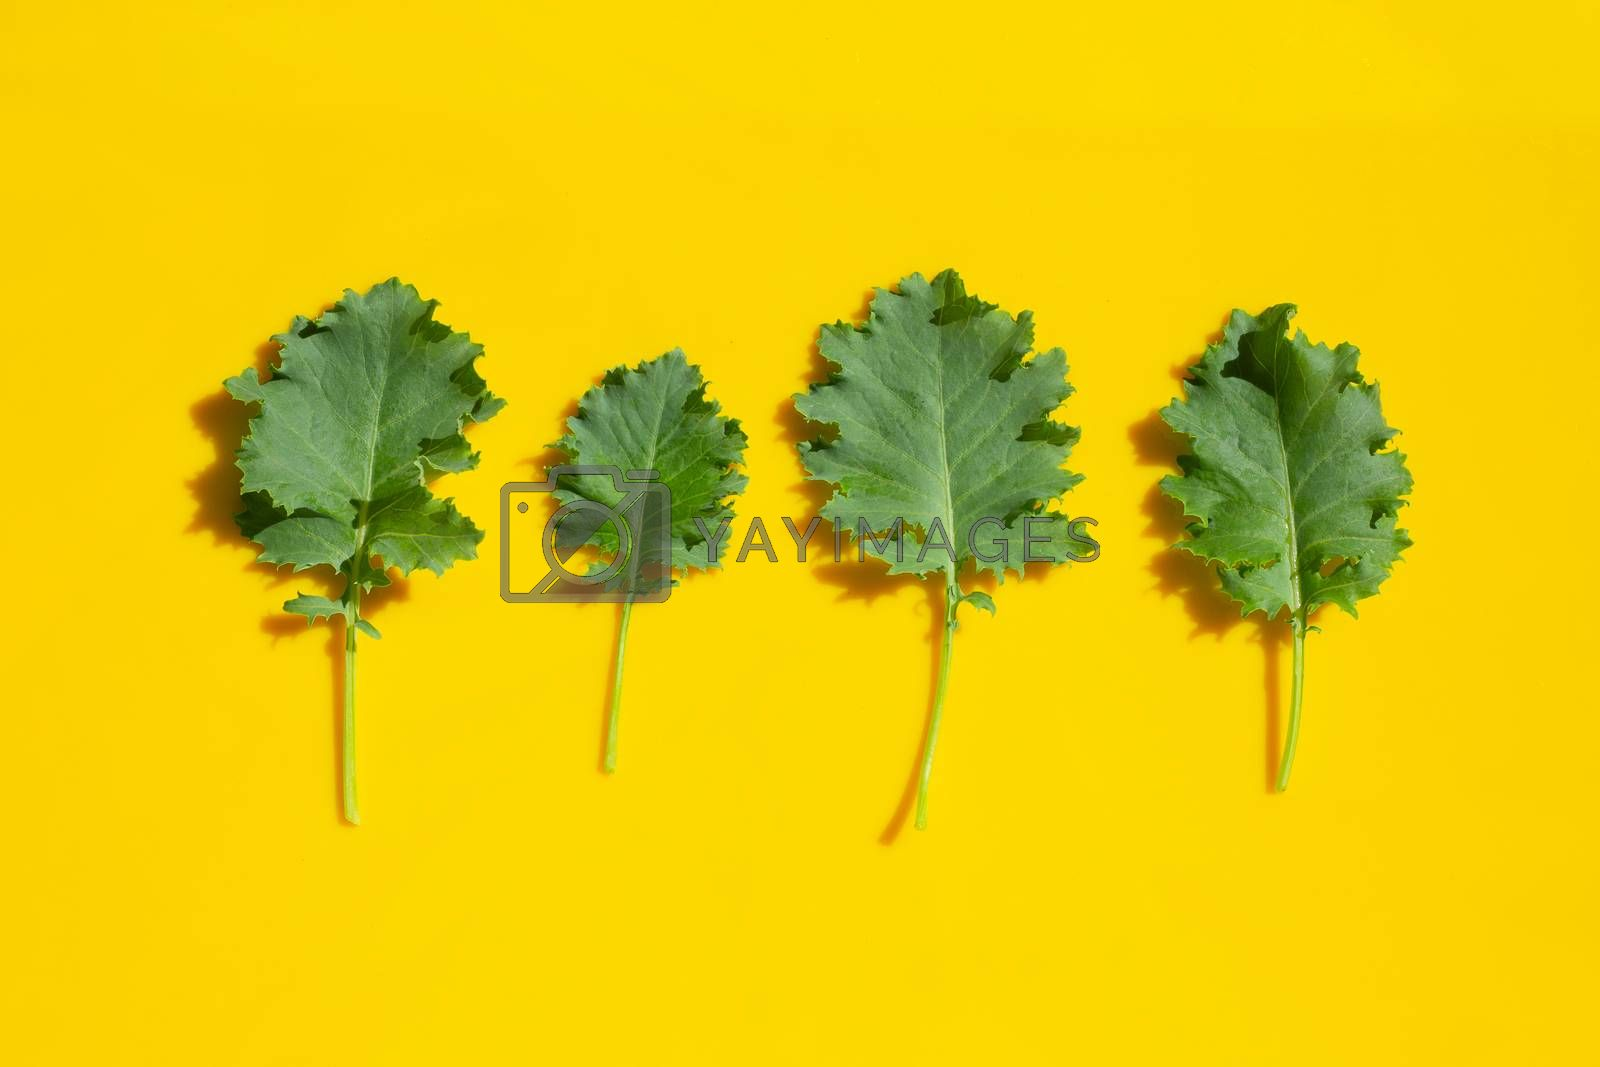 Kale leaves on yellow background. Top view